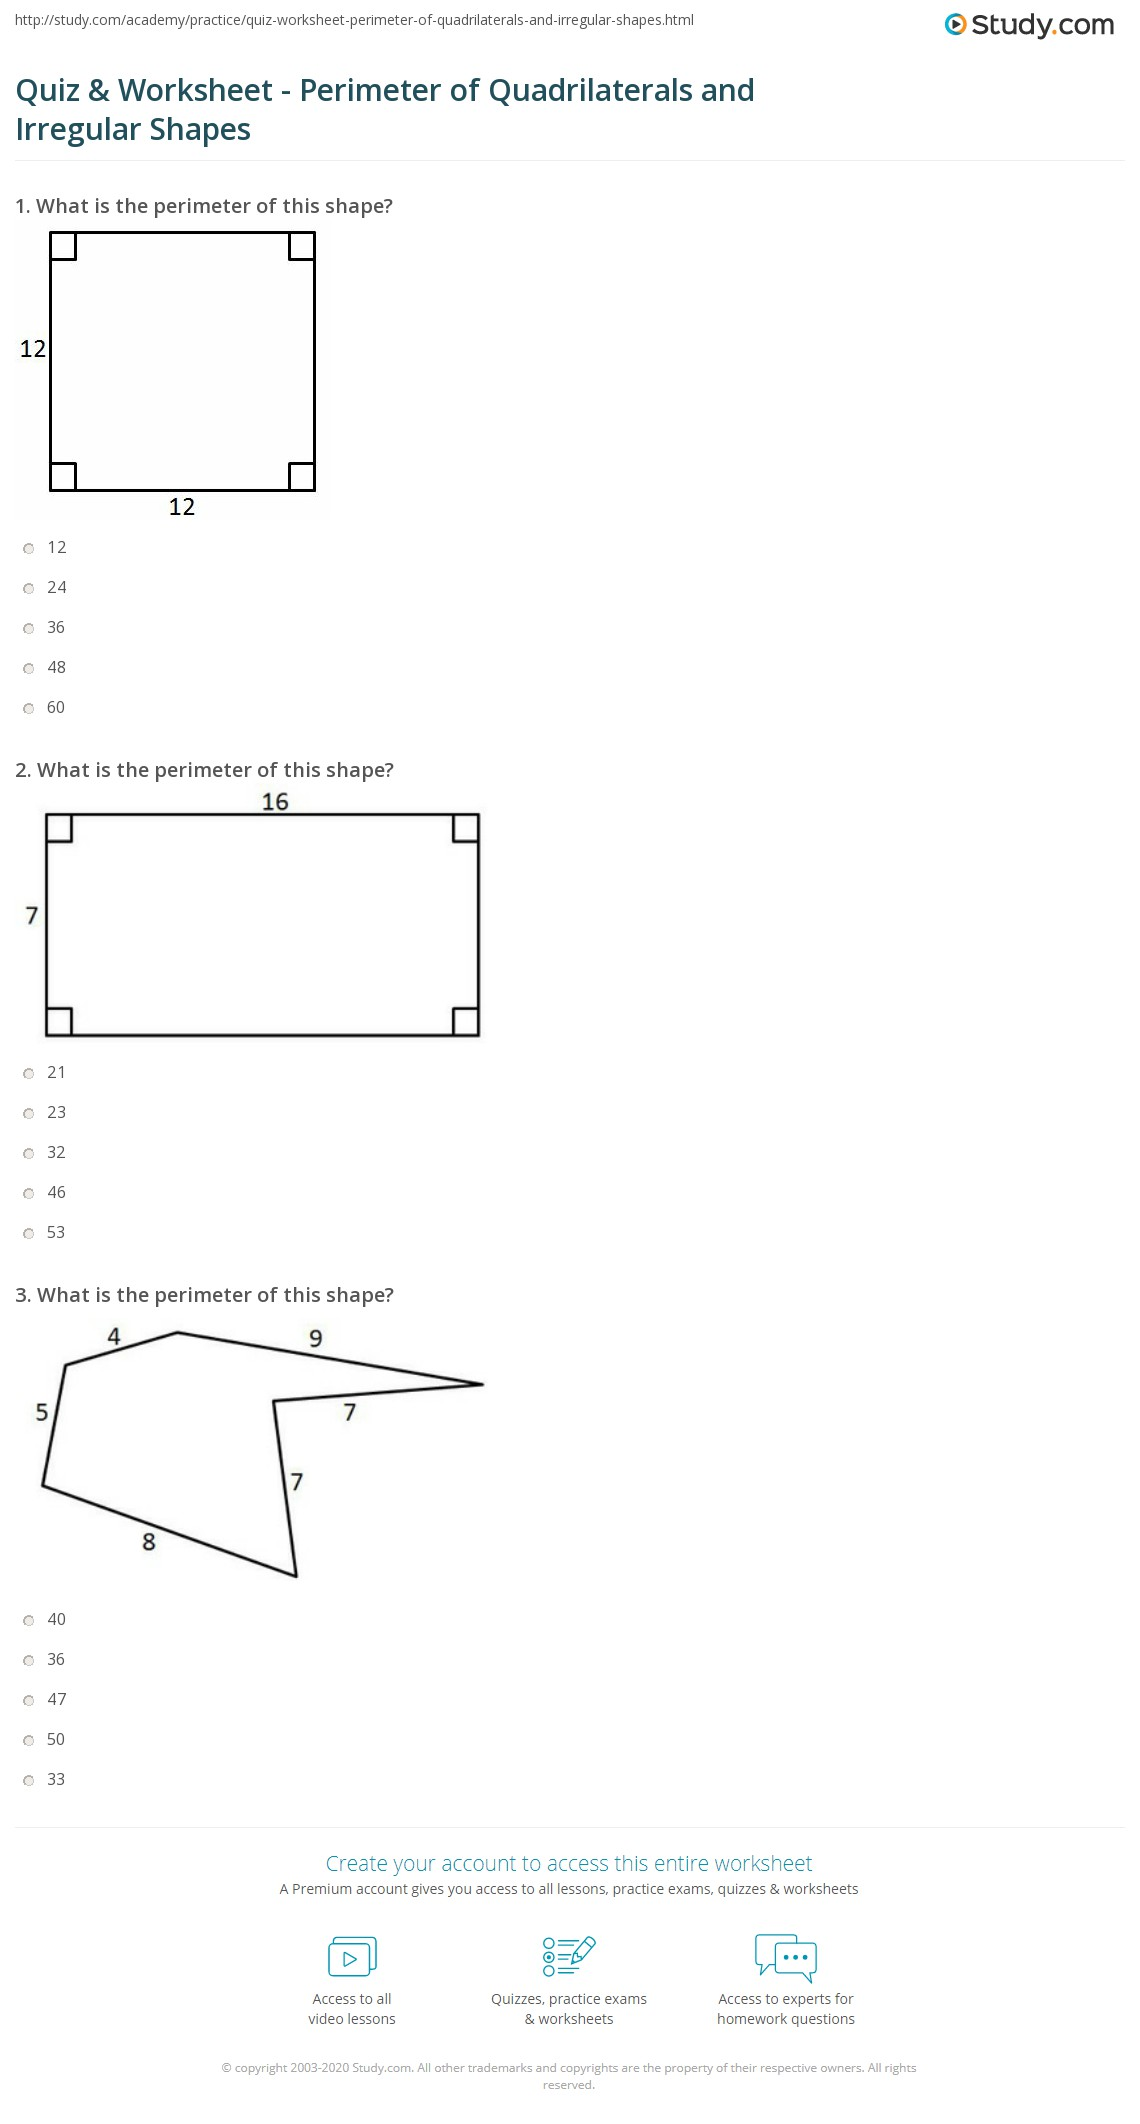 Worksheets Quadrilaterals Worksheet quiz worksheet perimeter of quadrilaterals and irregular shapes print or combined worksheet